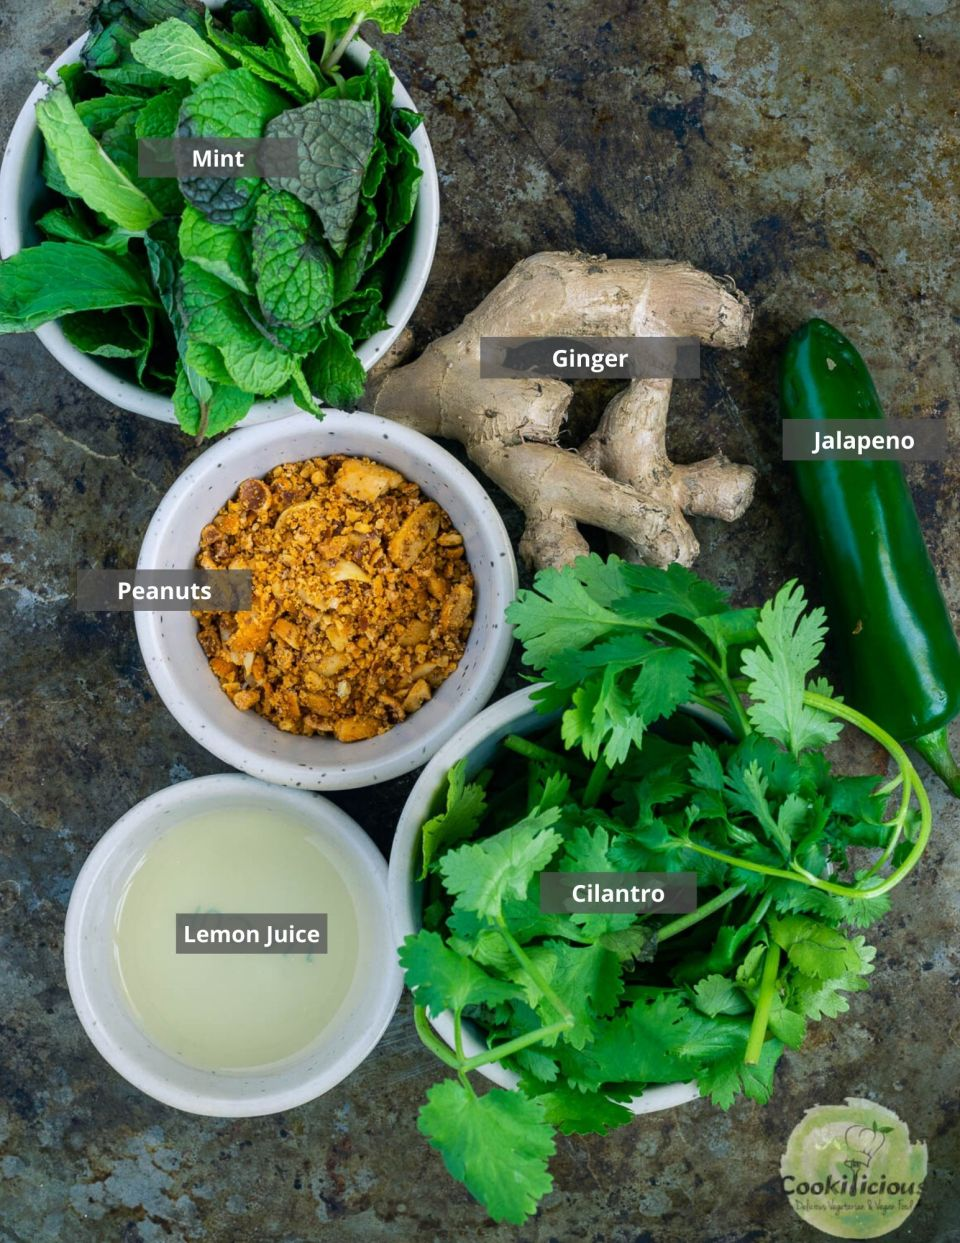 all the ingredients needed to make Mint Cilantro Chutney placed in a tray